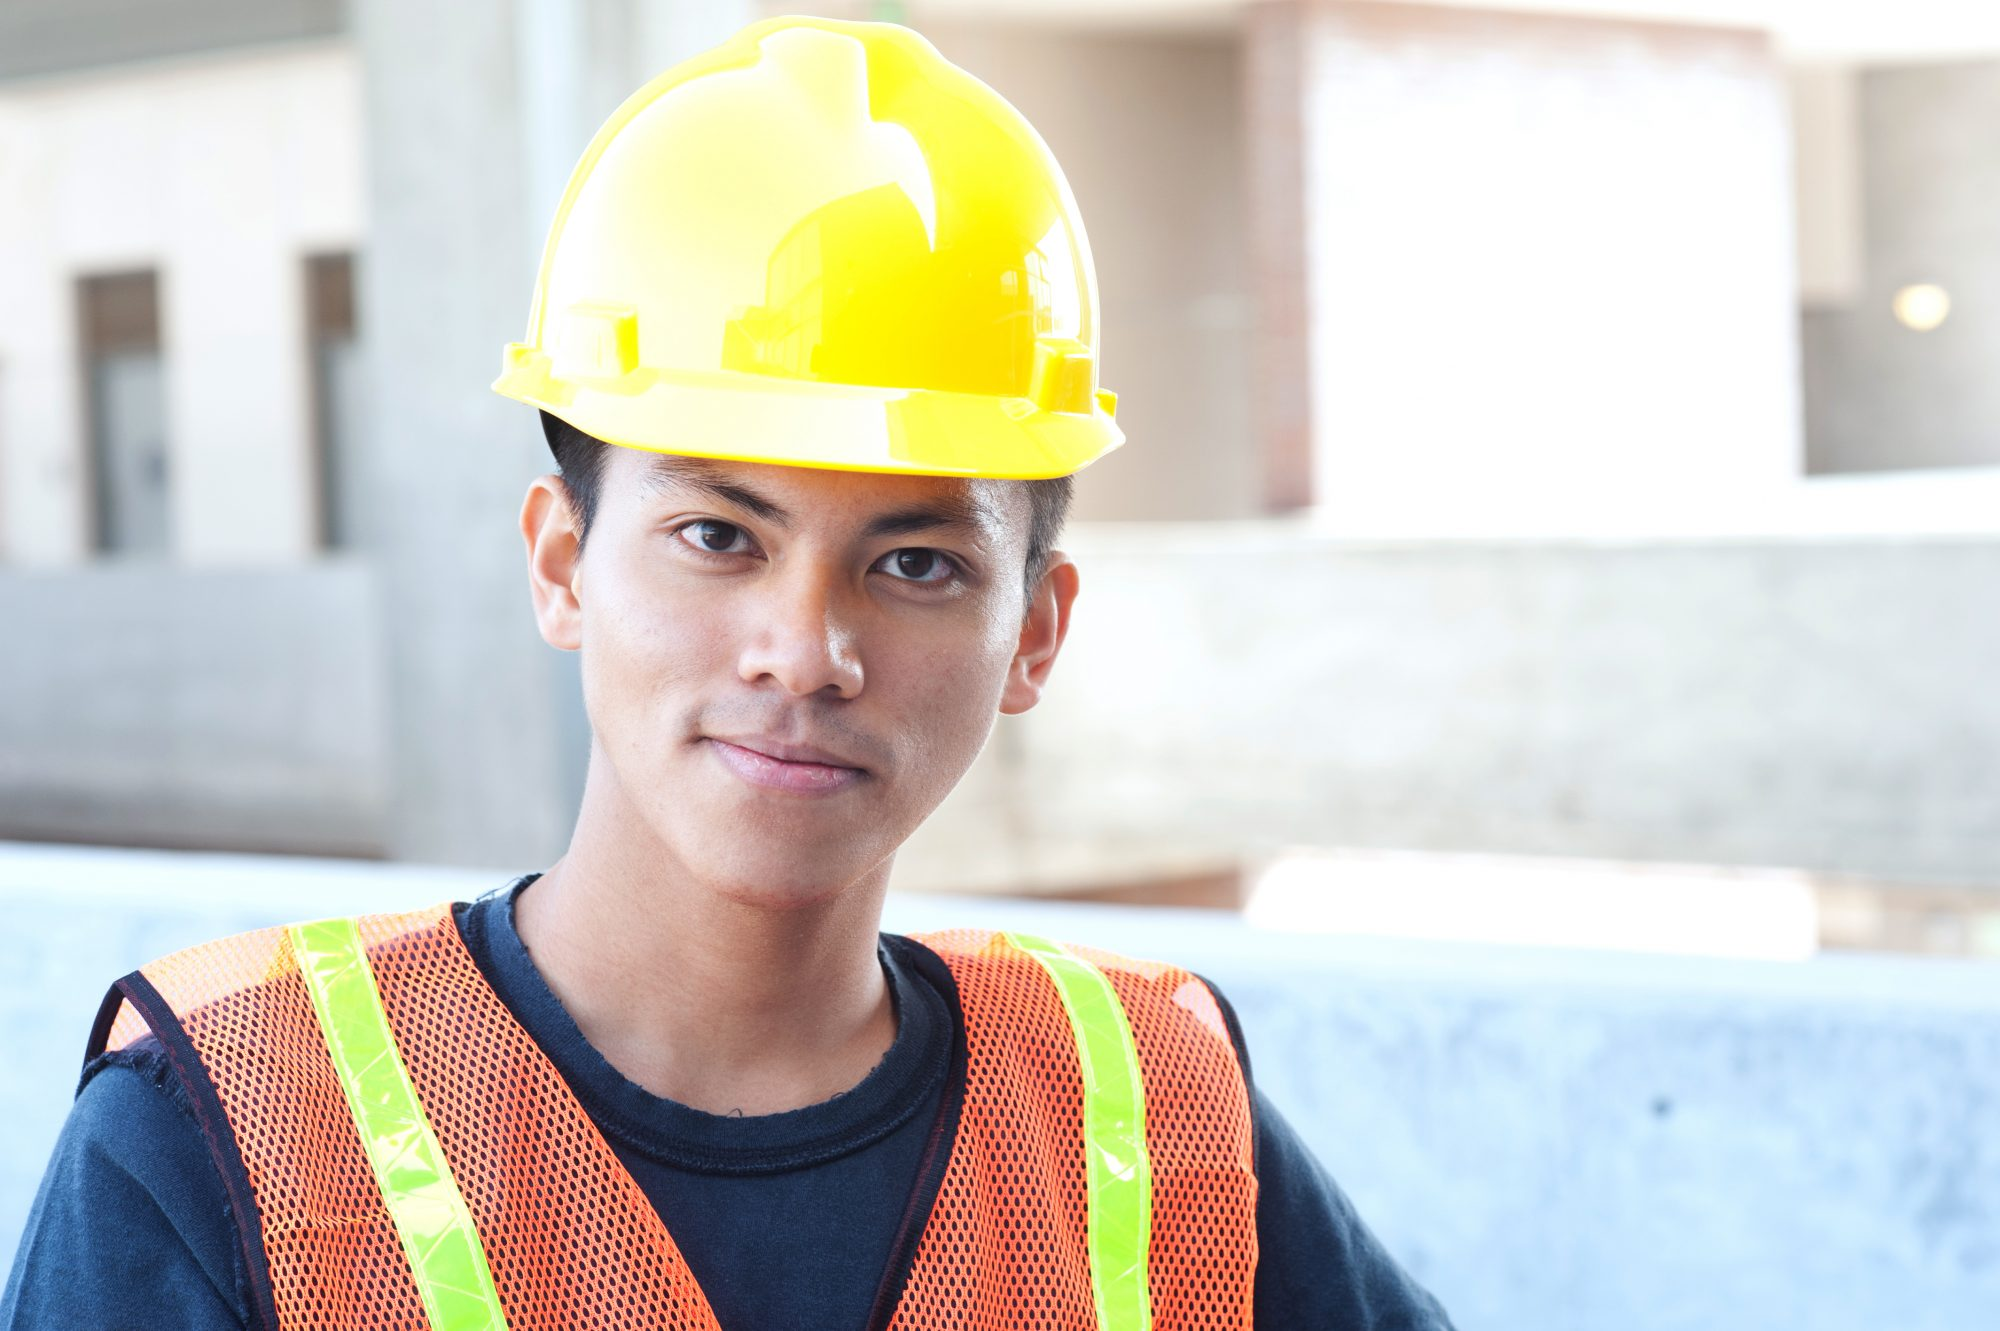 Construction industry must unite to give hope to next generation